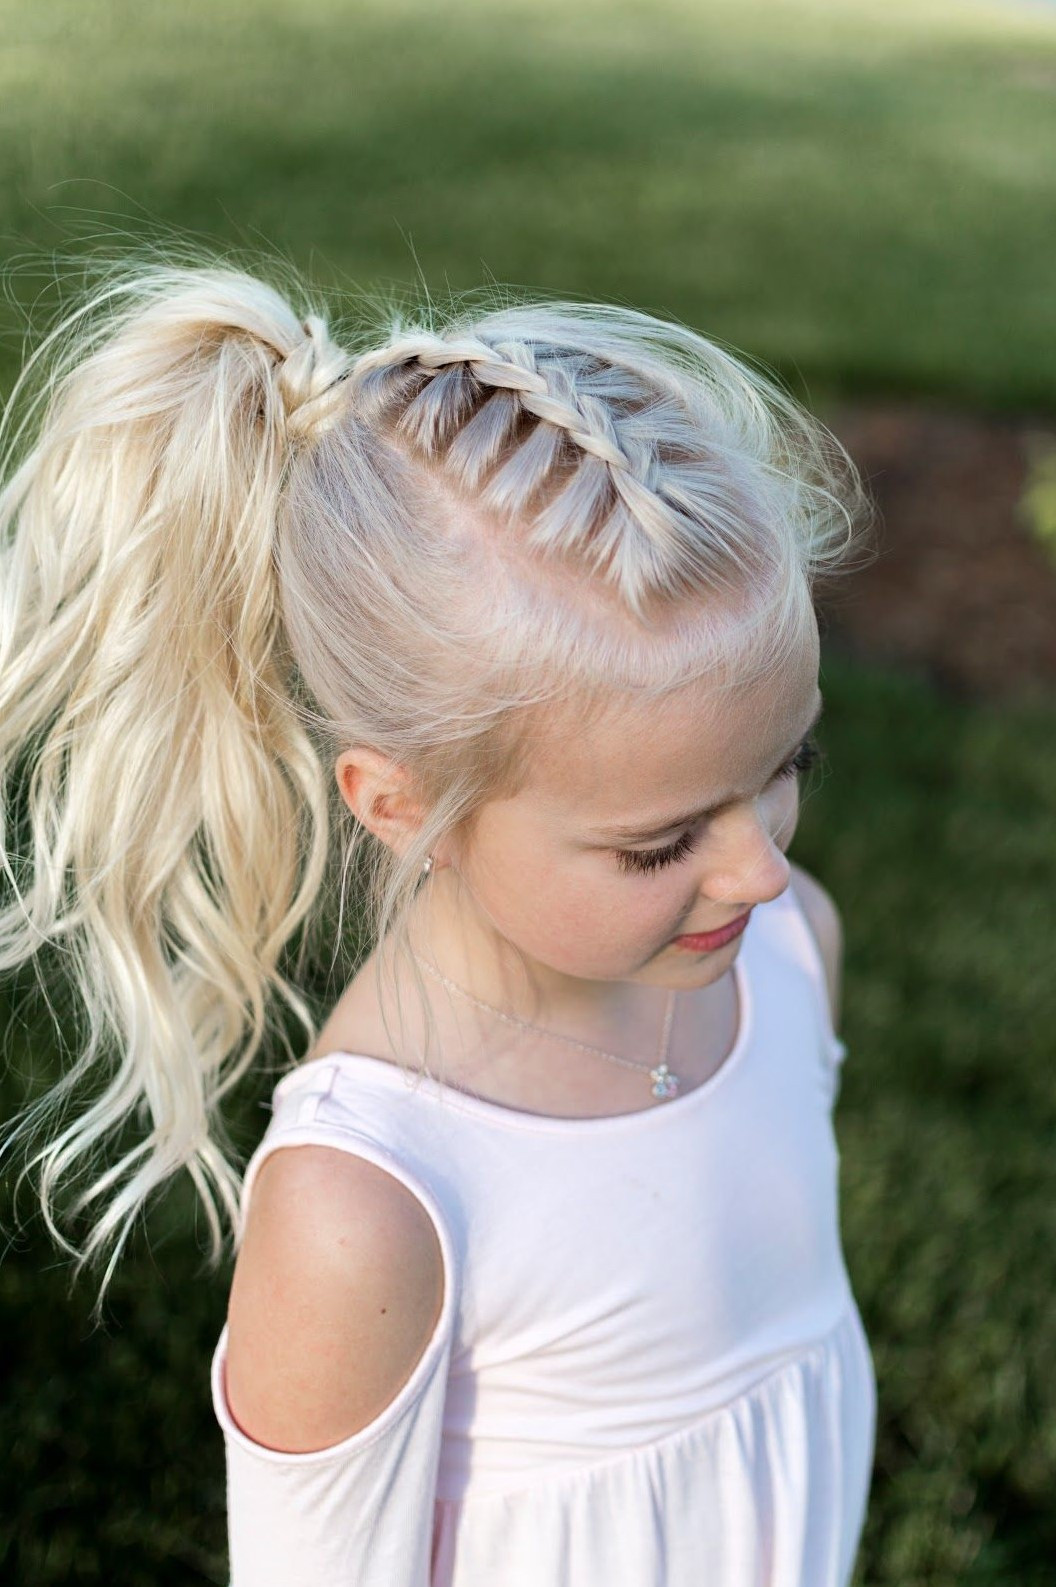 41 Adorable Hairstyles For Little Girls Sensod